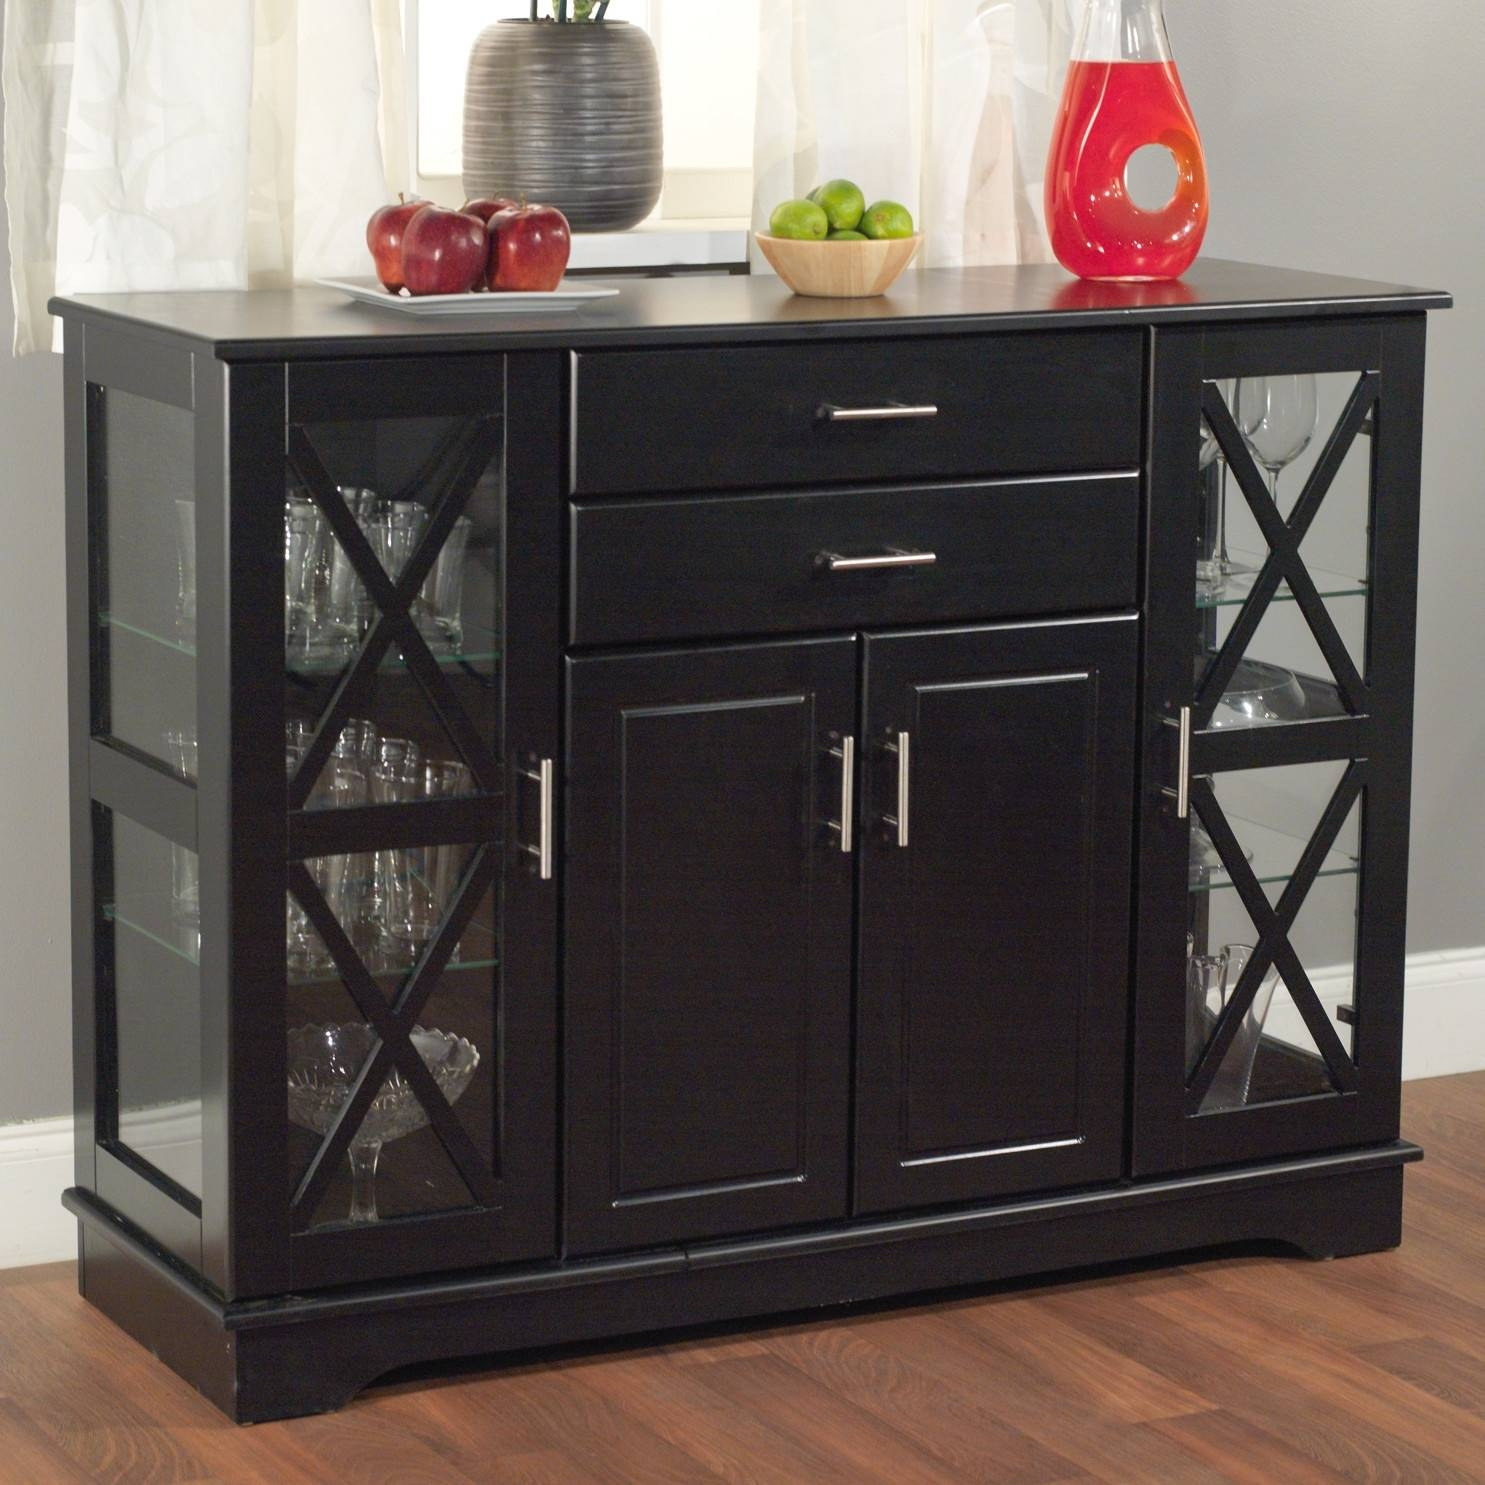 Category Pertaining To Latest Black Sideboard Cabinets (#3 of 15)